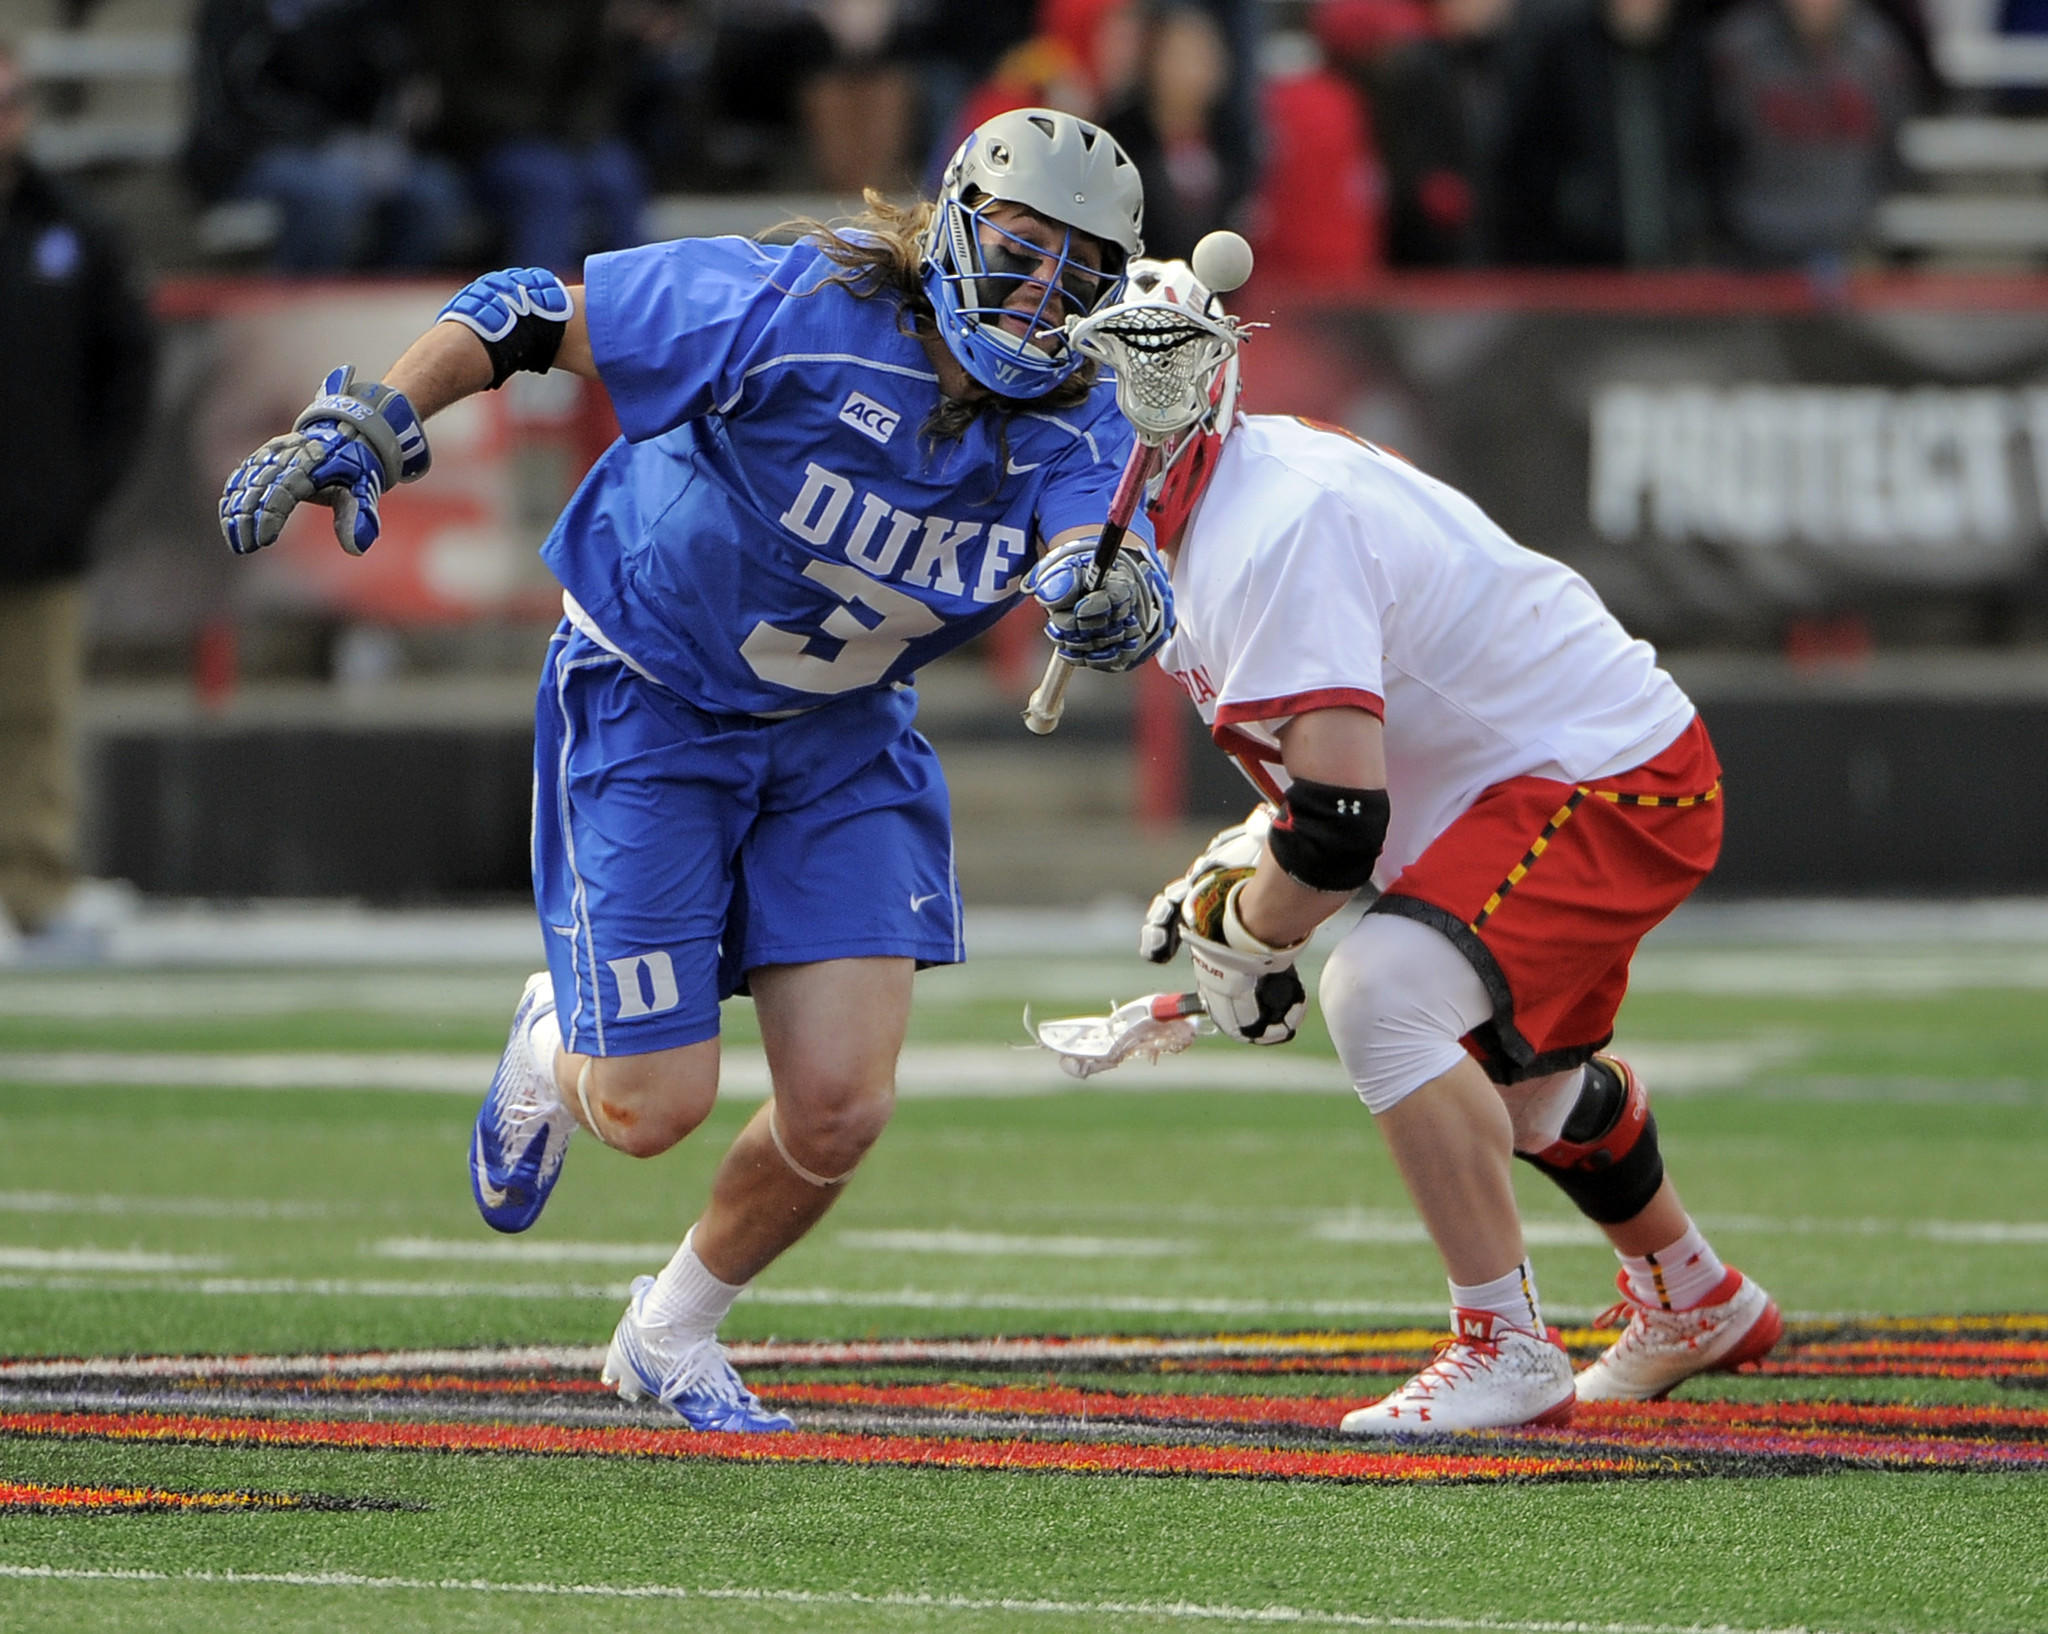 Duke's Brendan Fowler pops the ball to himself after beating Maryland's Charlie Raffa on a third-quarter faceoff.